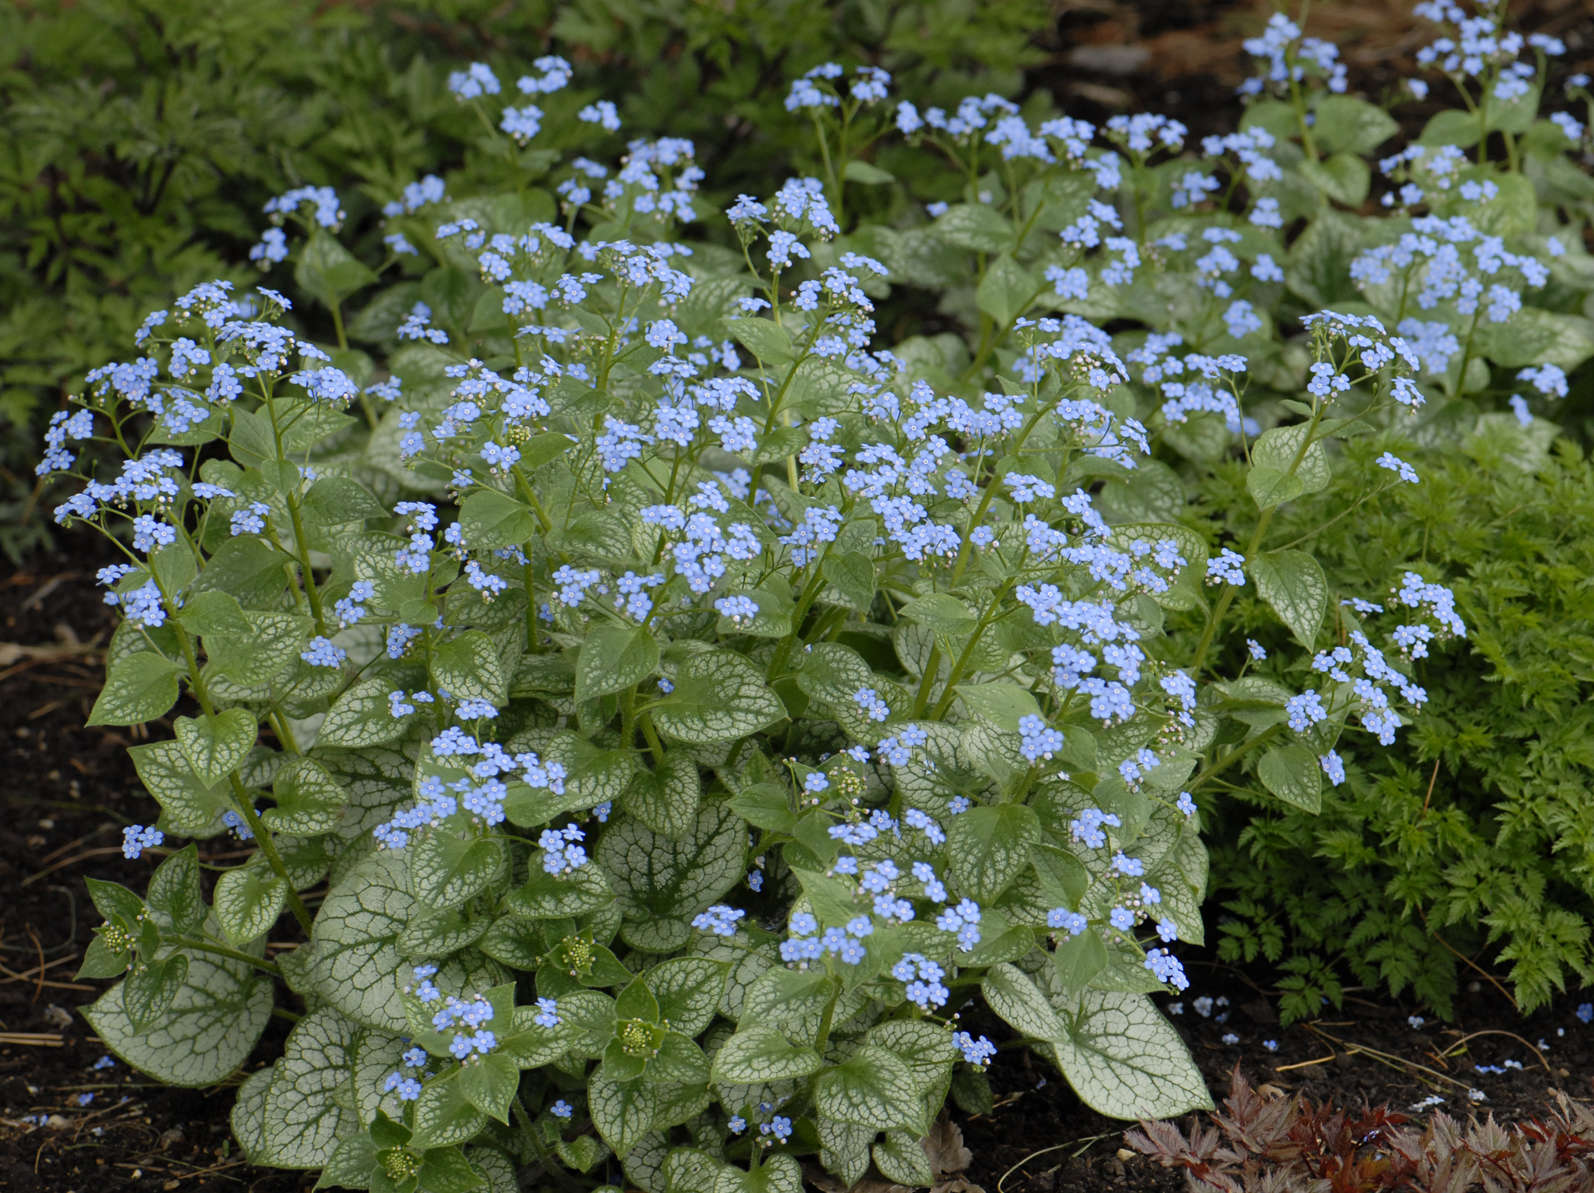 Ppa perennial plant of the year award winners walters gardens inc 2012 perennial plant of the year brunnera imi izmirmasajfo